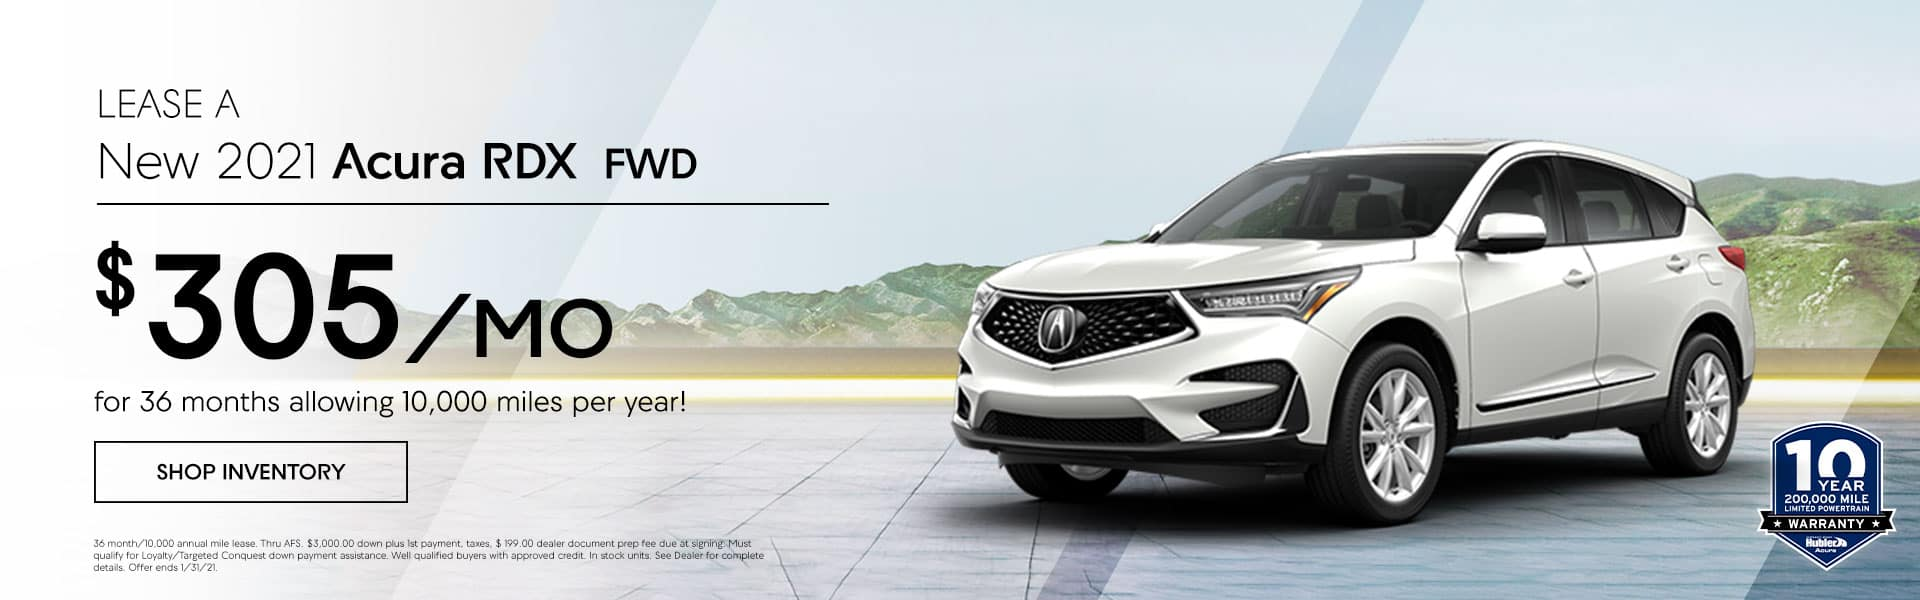 2021 Acura RDX FWD Lease for just $305.00 per month for 36 months allowing 10,000 miles per year!